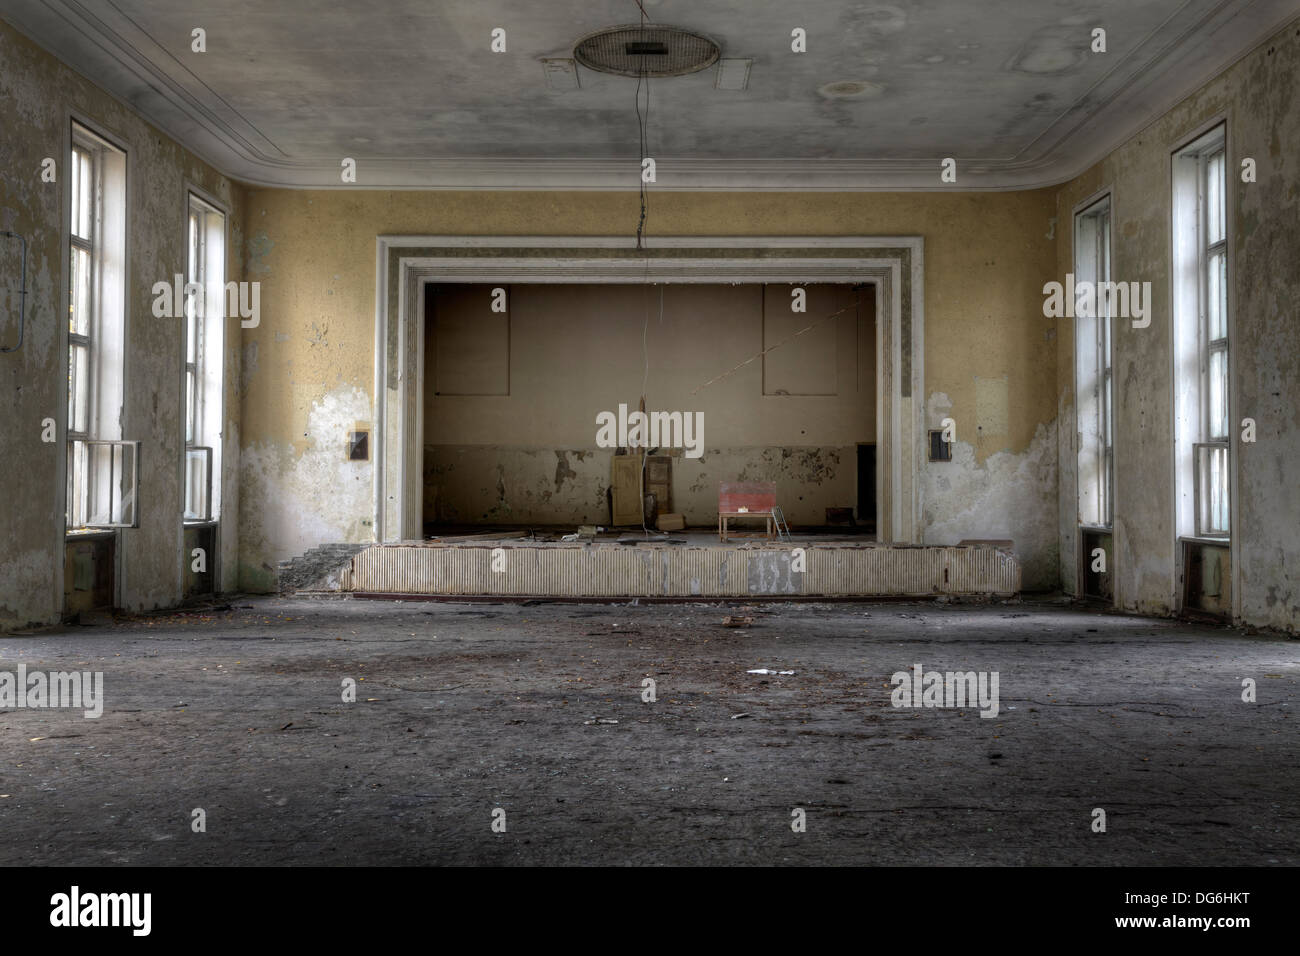 Decline of the arts - an abandoned theater at the Abandoned Soviet missile base, Vogelsang, Brandenburg, Germany - Stock Image